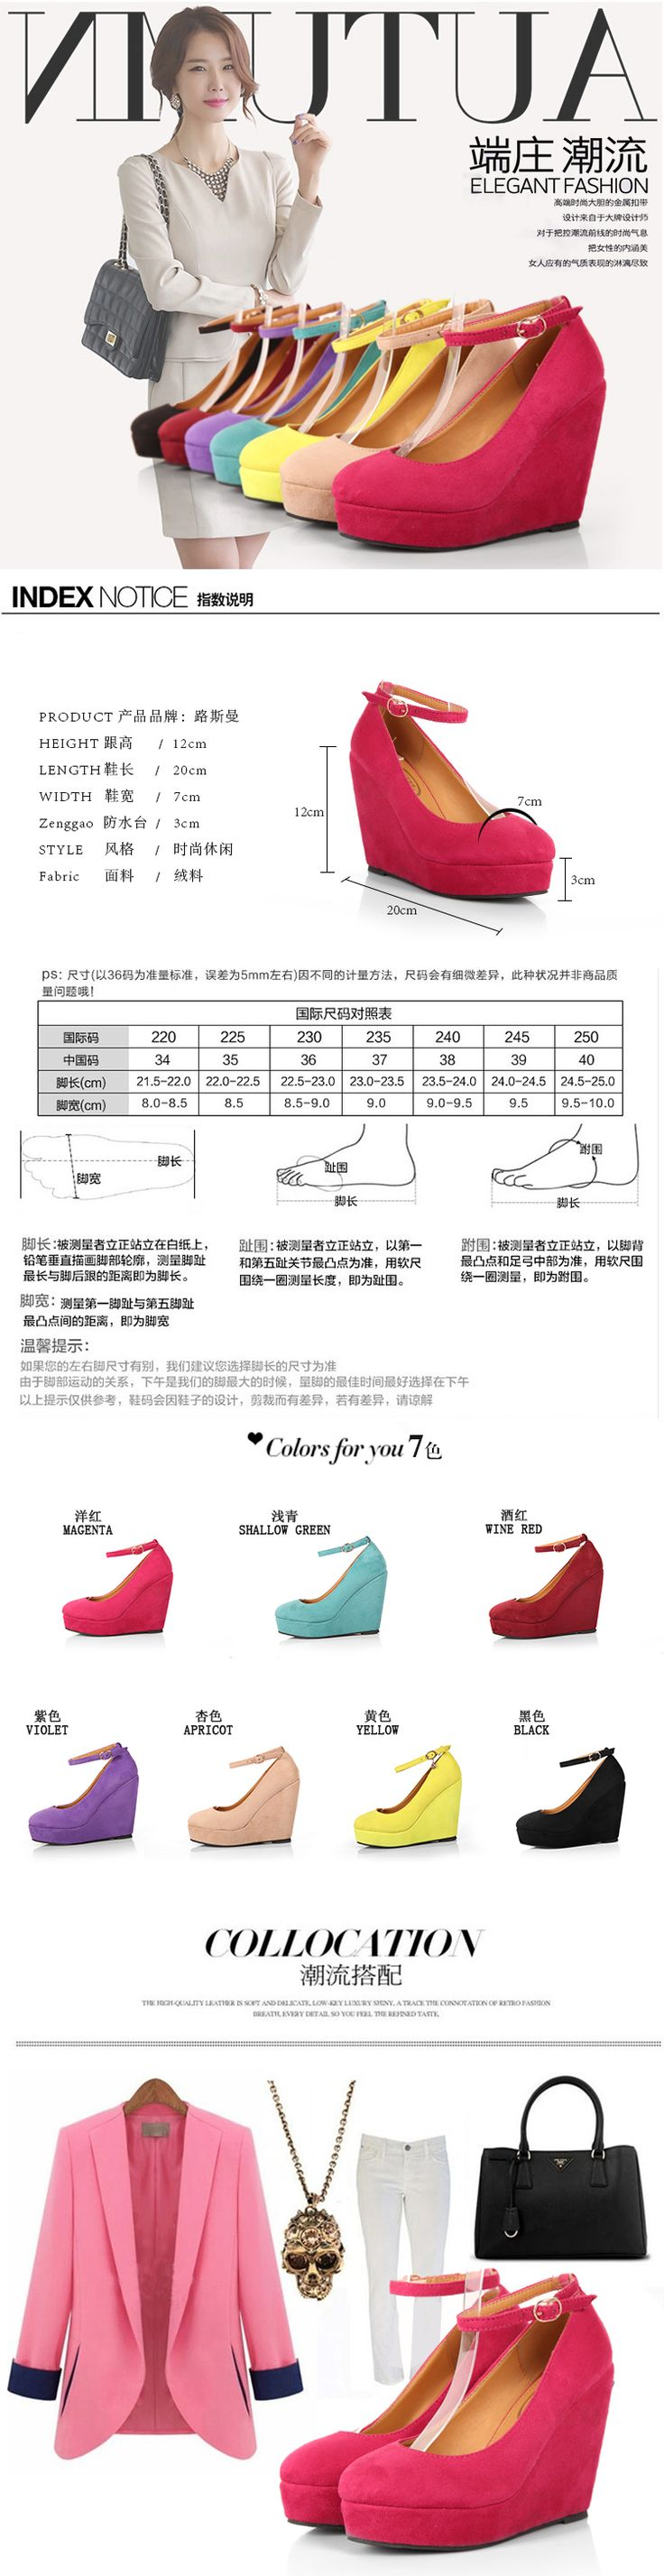 New Wedges Pumps Shoes High Heels Wedges Spring Brief Shallow Mouth High Heeled Belt Button Women'S Wedges Platform Shoes Leather Shoes For Men Mens Sneakers From Excellentservice, $35.18| Dhgate.Com